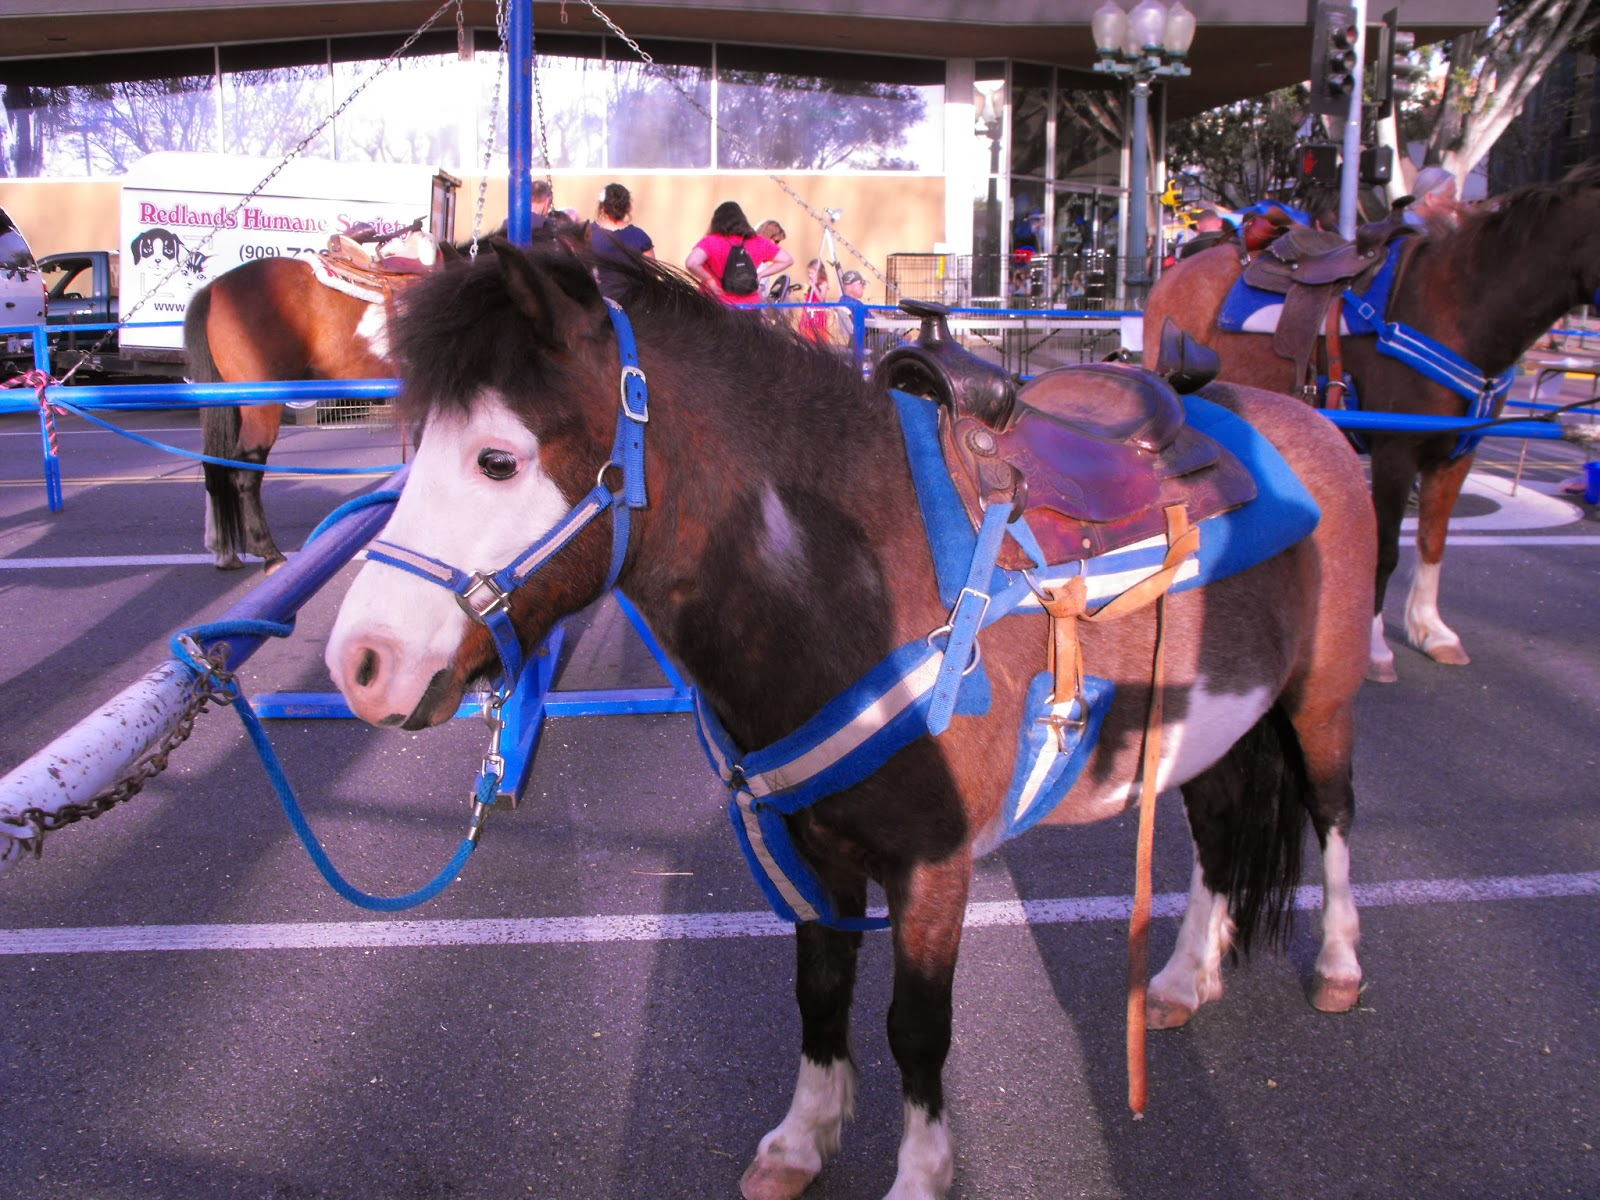 Becky's Pony Express - Pony Rides, Petting Zoo and Pony Parties